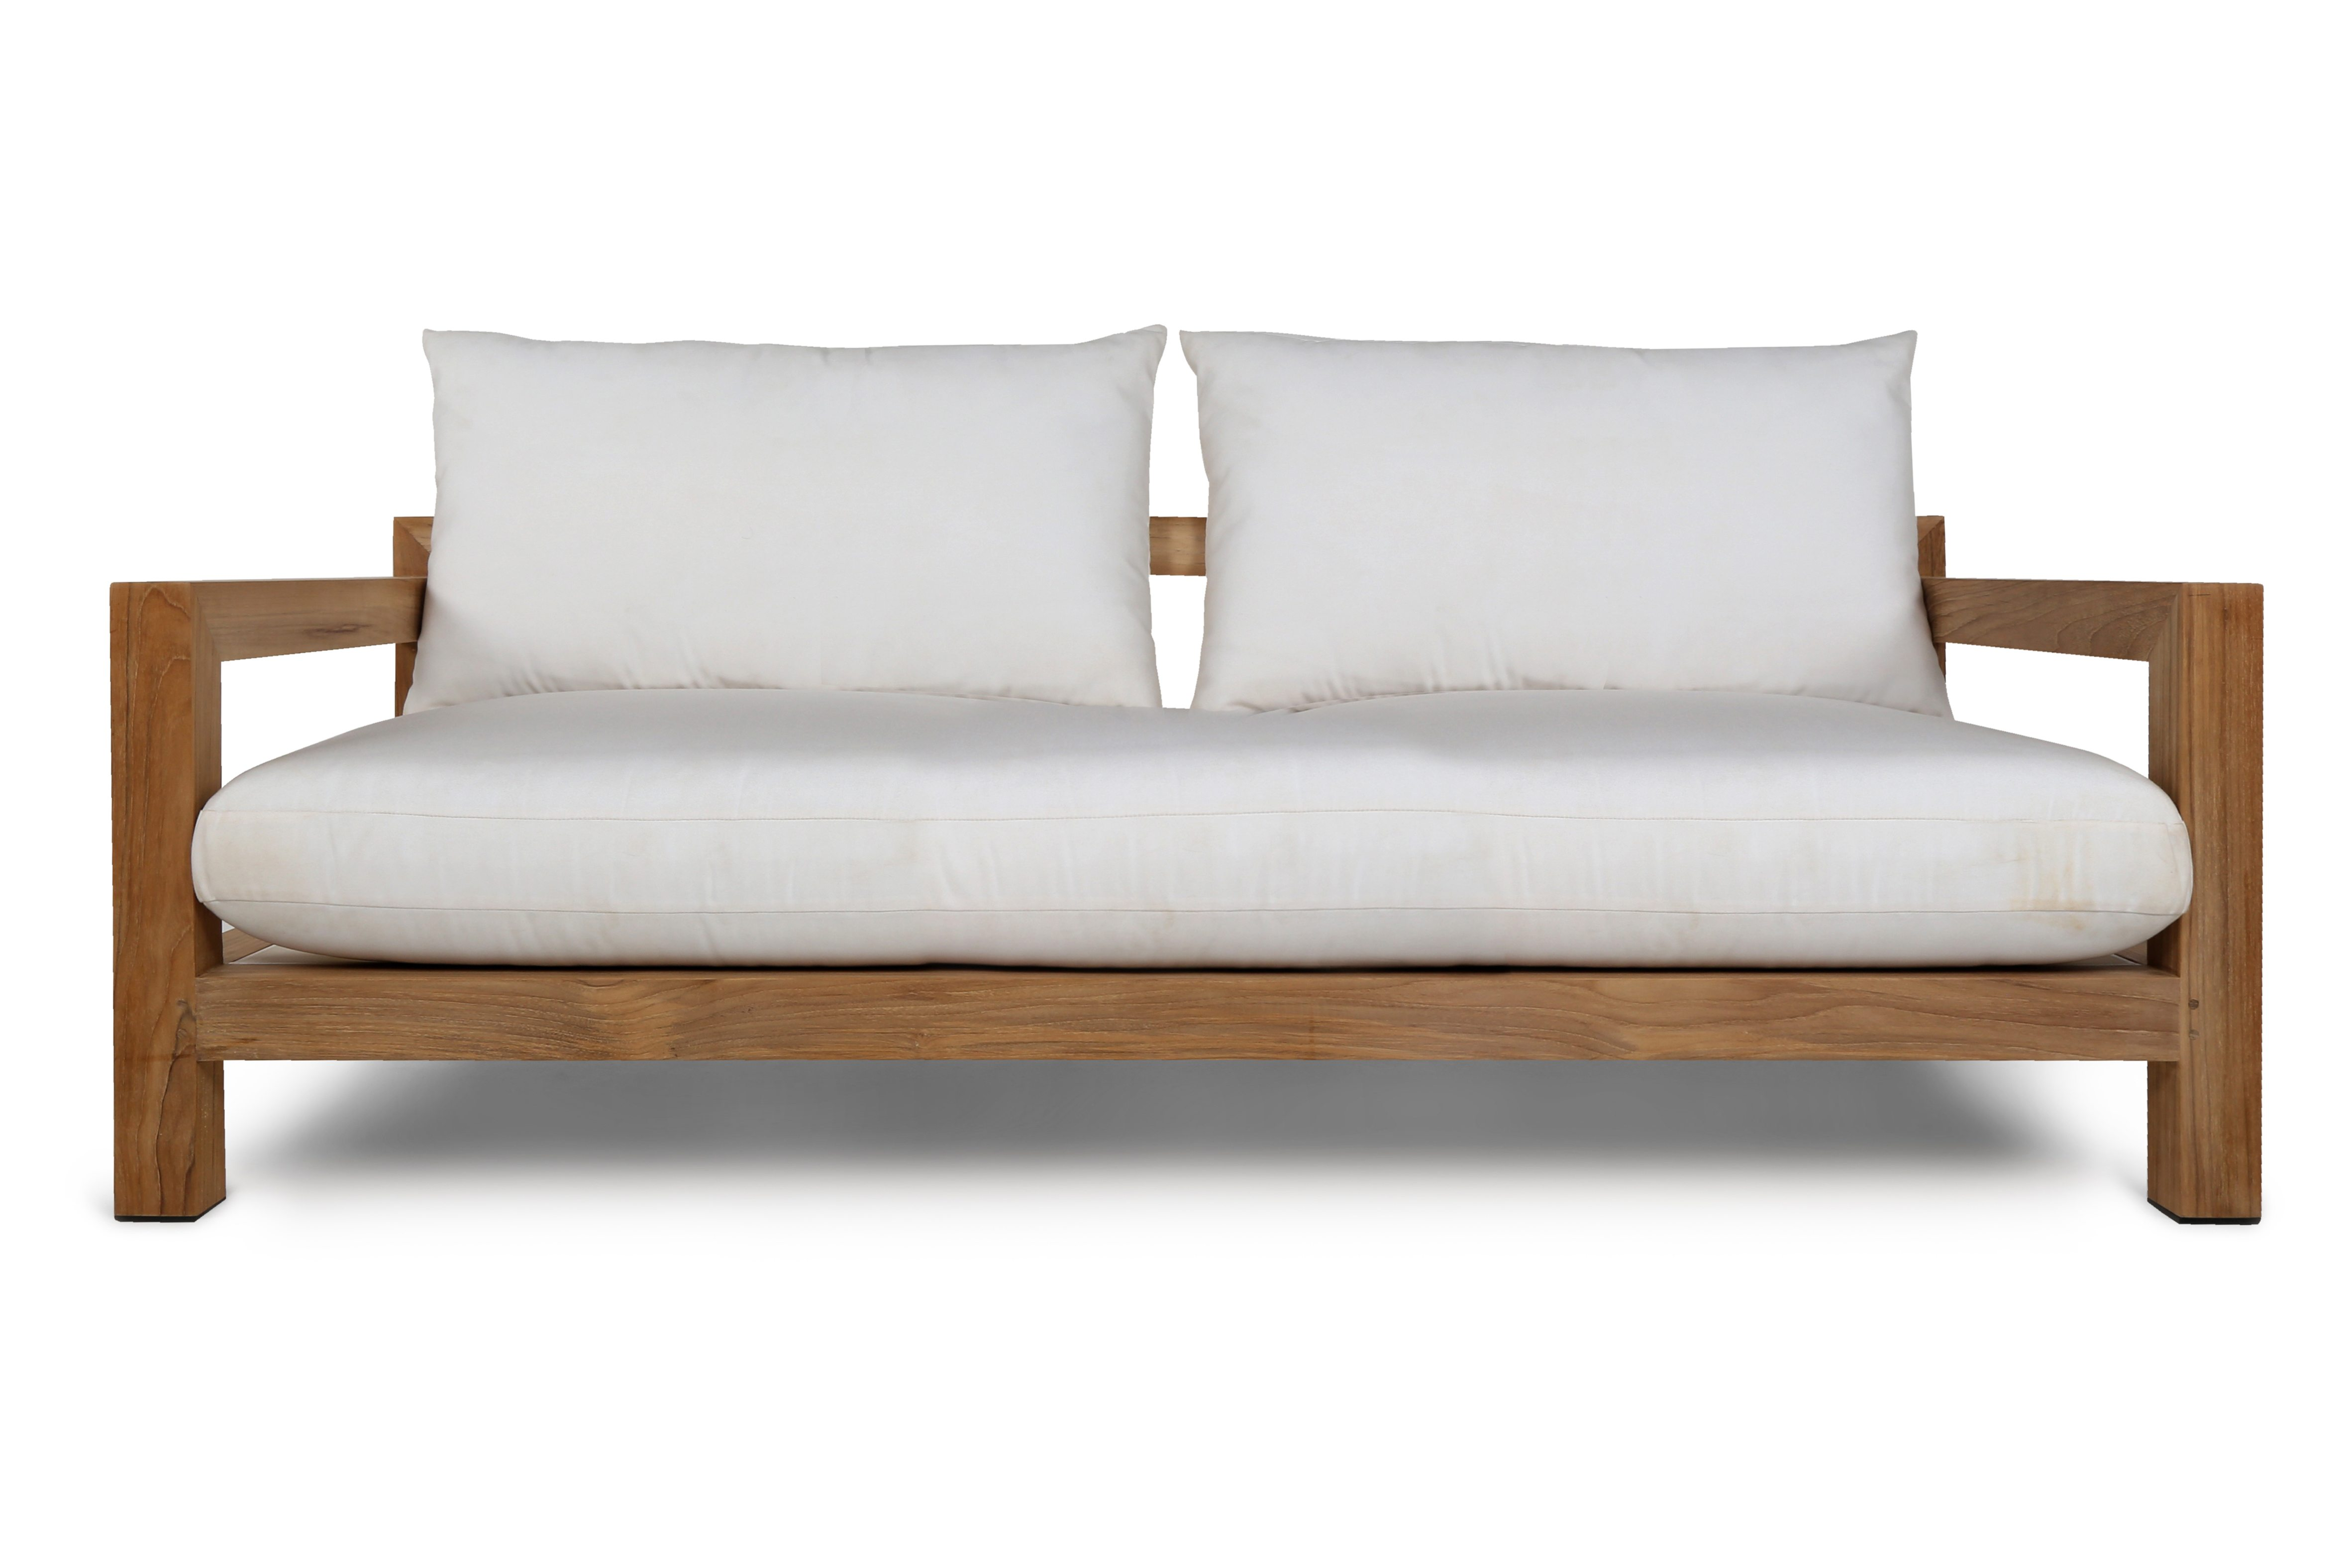 sofa arm table australia what size is a queen sleeper pacific 2 seat indonesian teak harbour outdoor